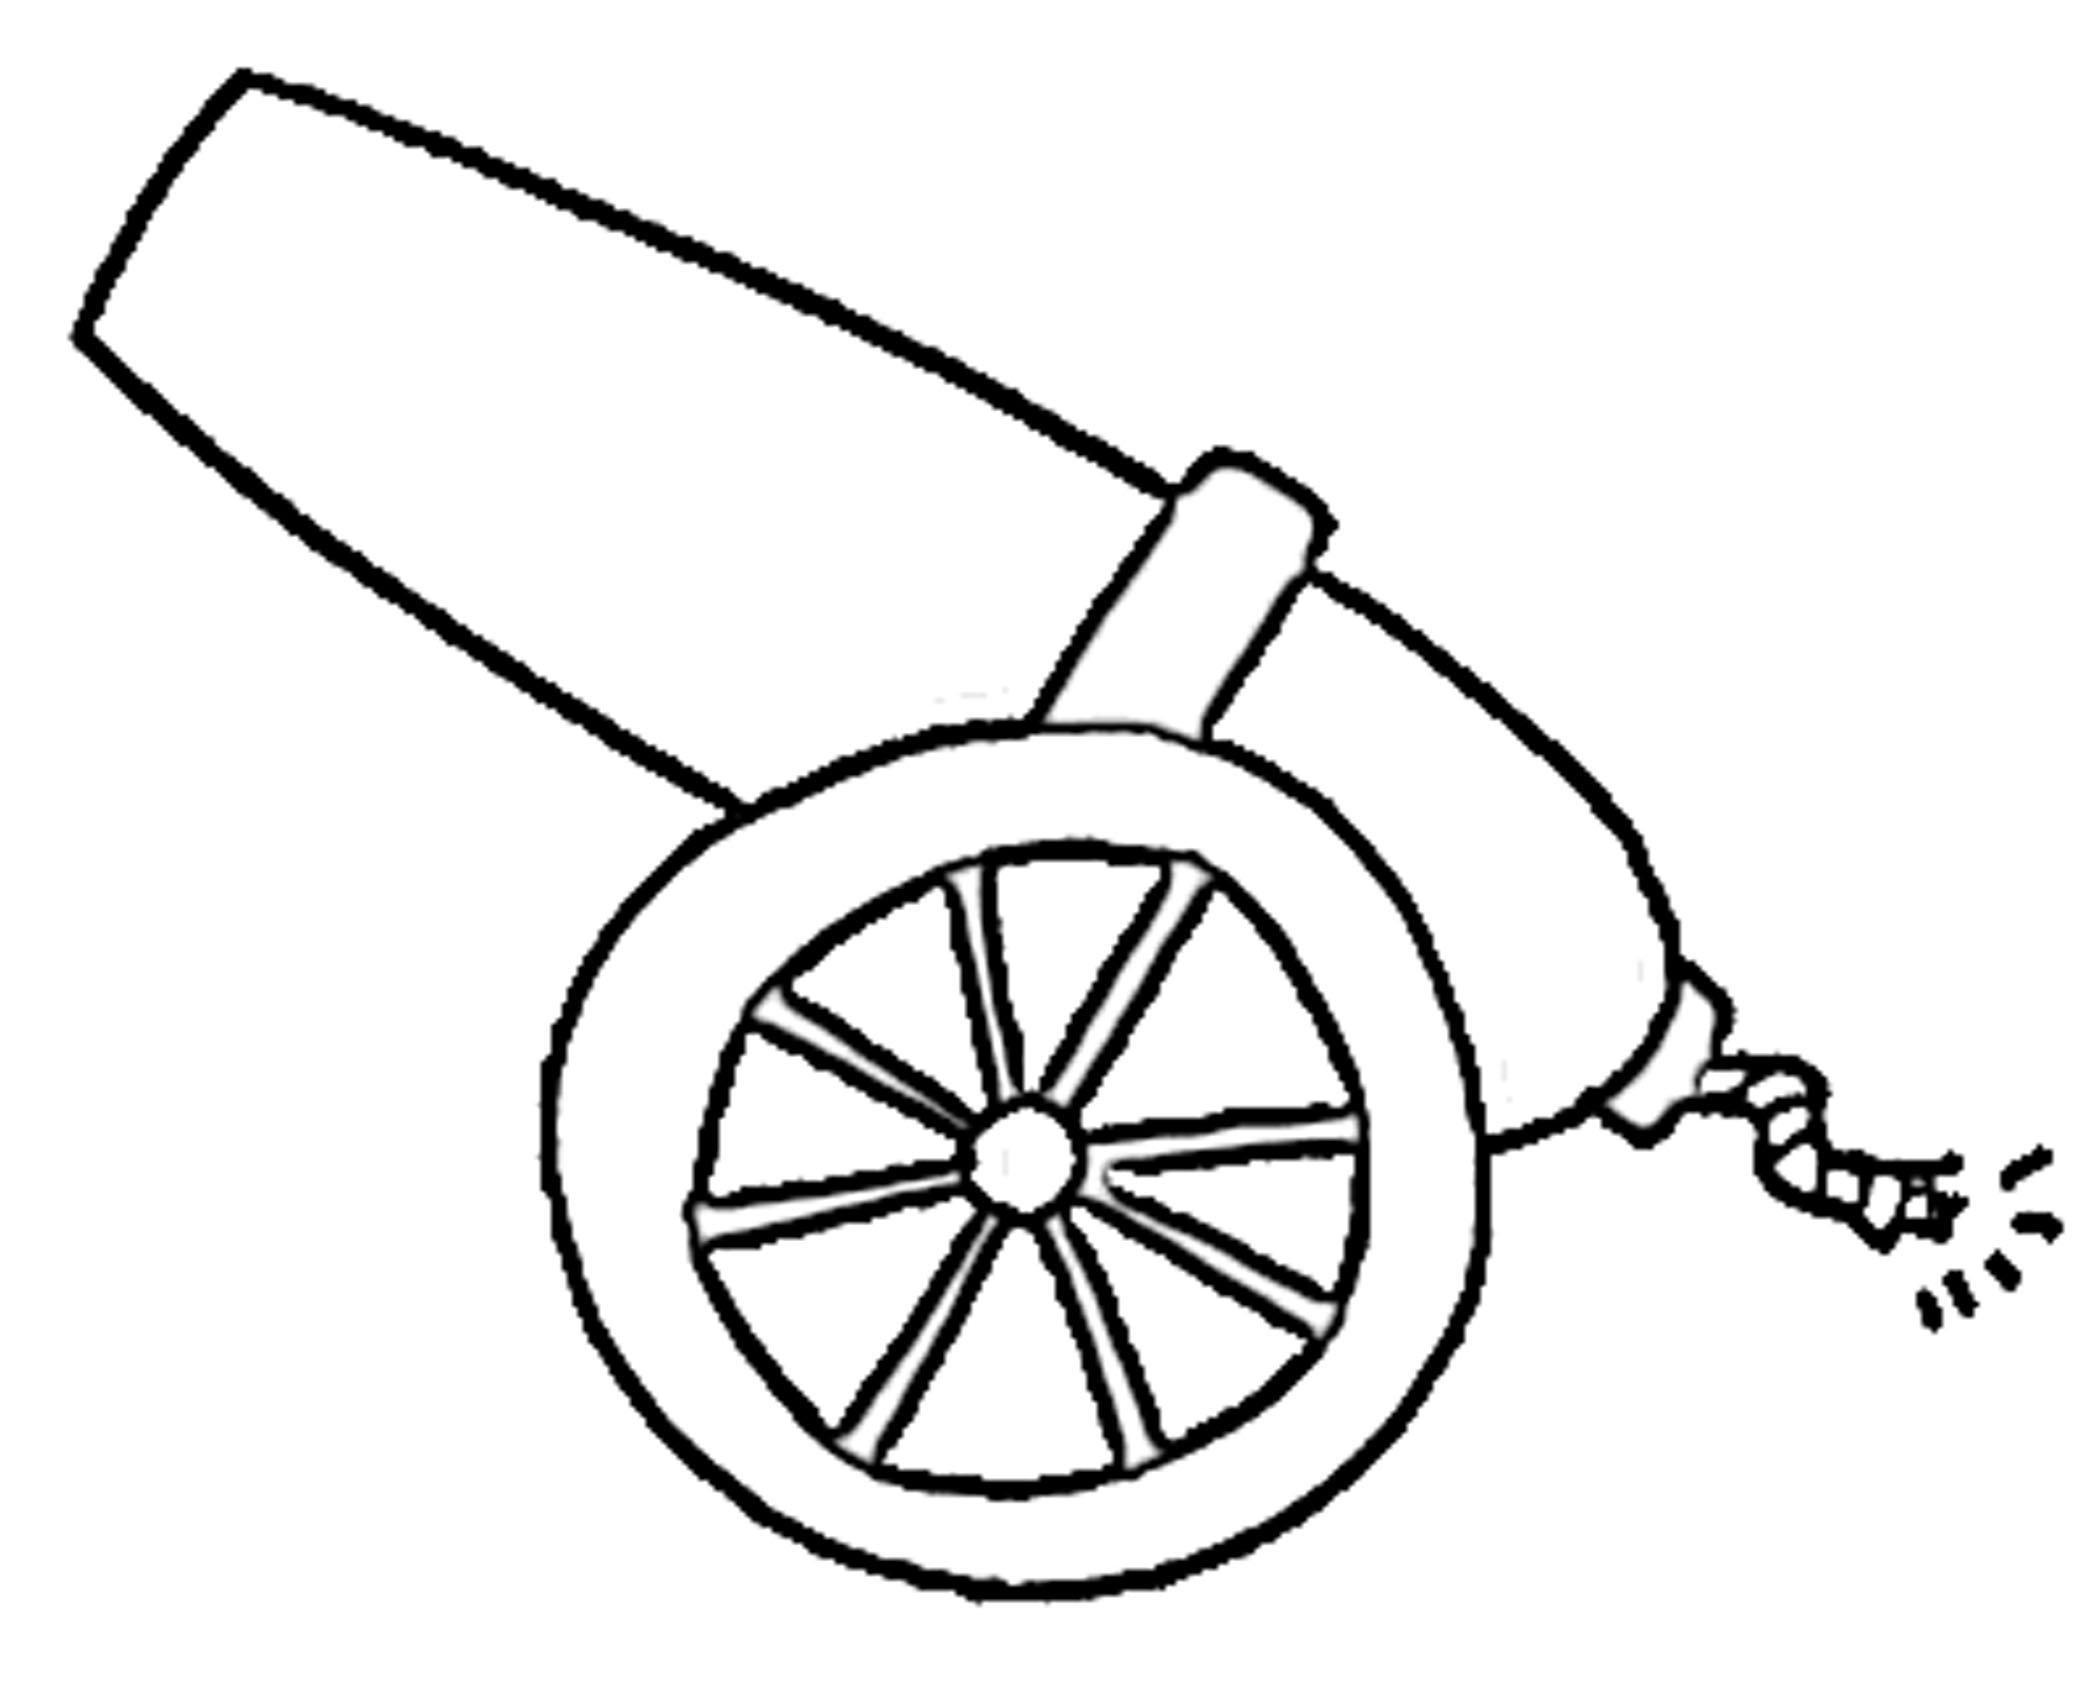 Clip Art Cannon Clipart printable of cannons clipart kid posted by john andersen in patriotic on july 28 2011 no responses